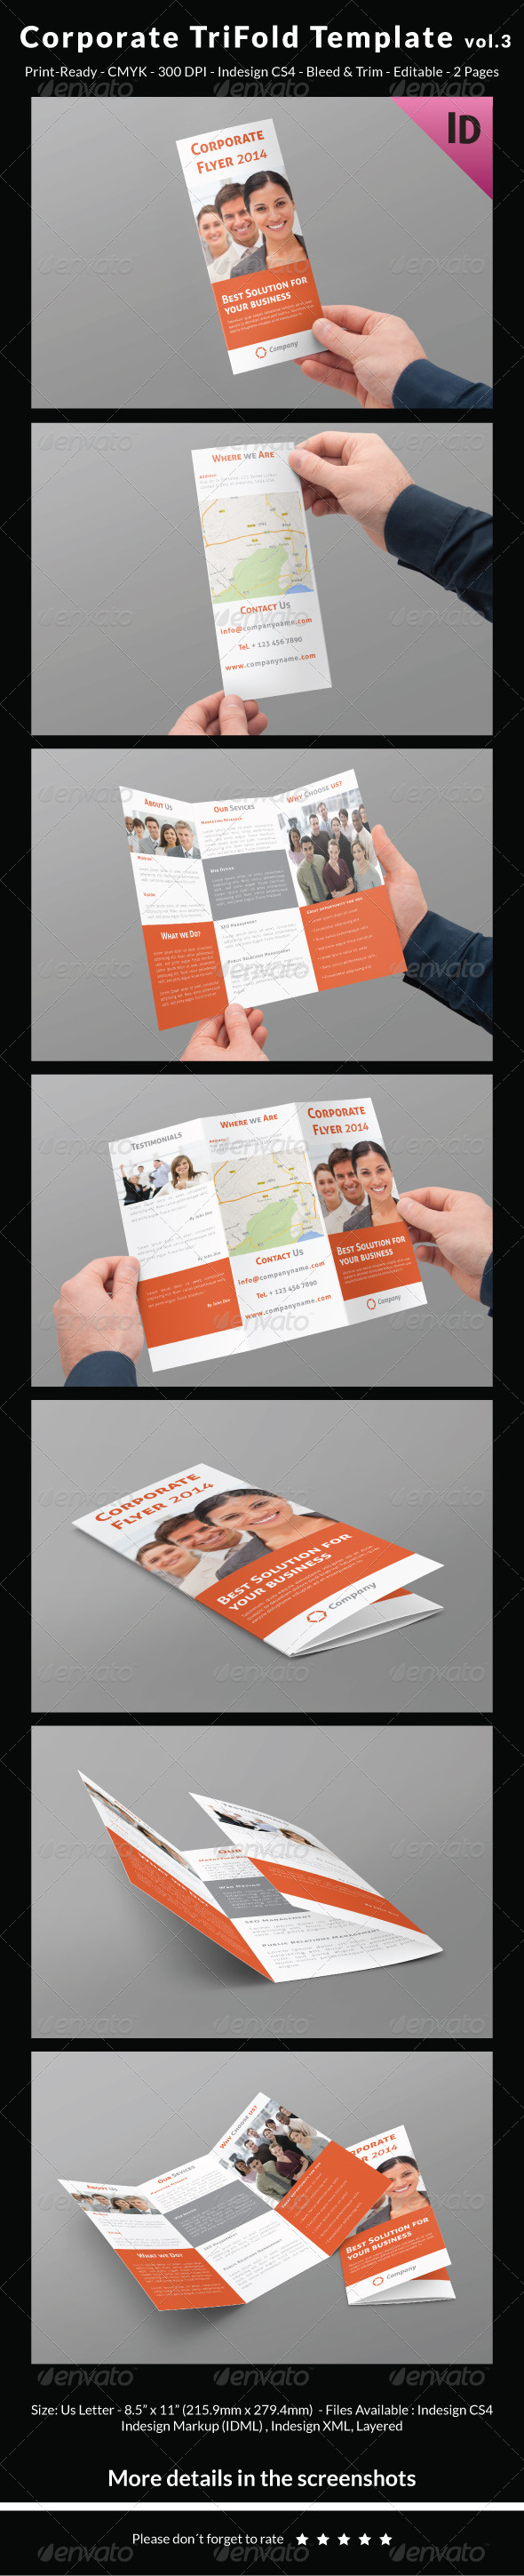 Corporate Trifold Template vol.3 - Corporate Brochures